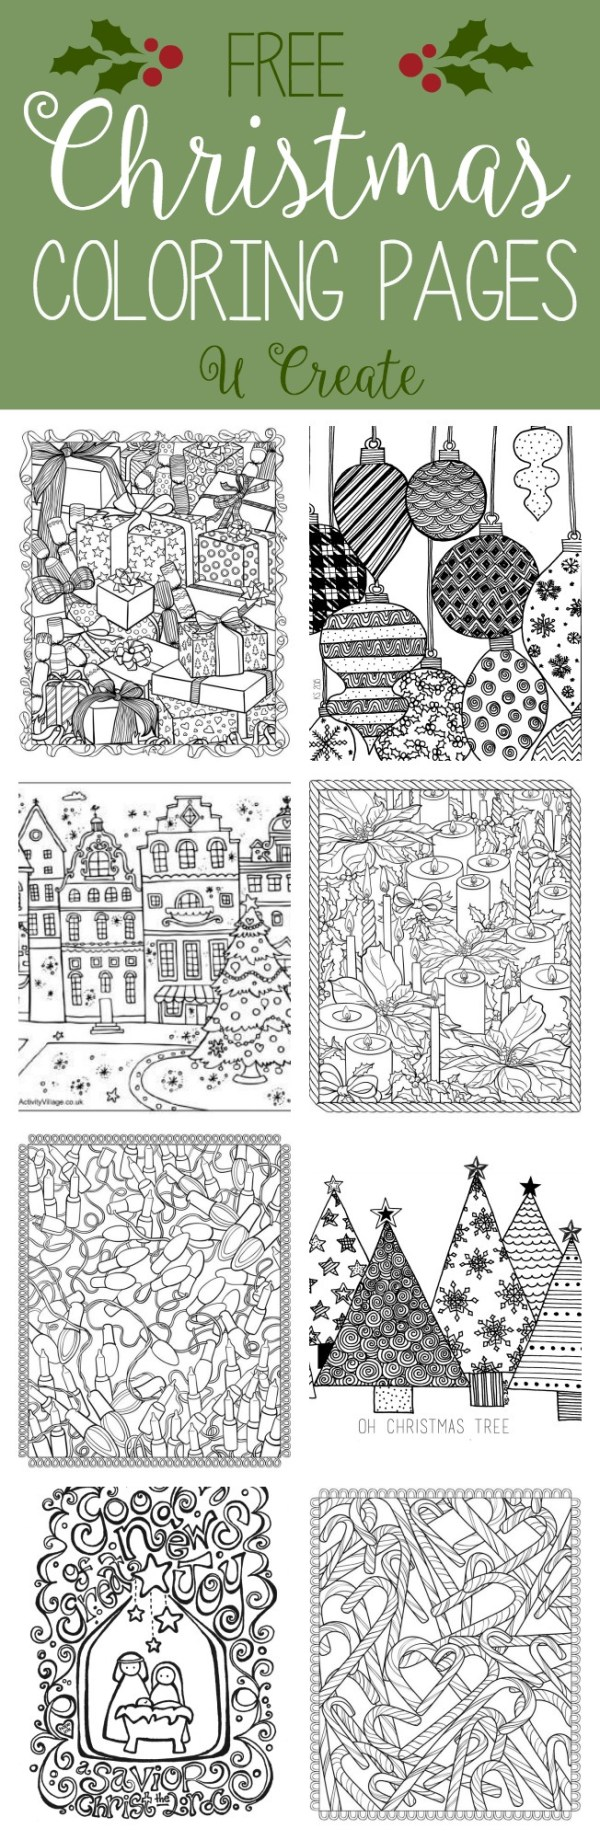 free printable holiday coloring pages # 9